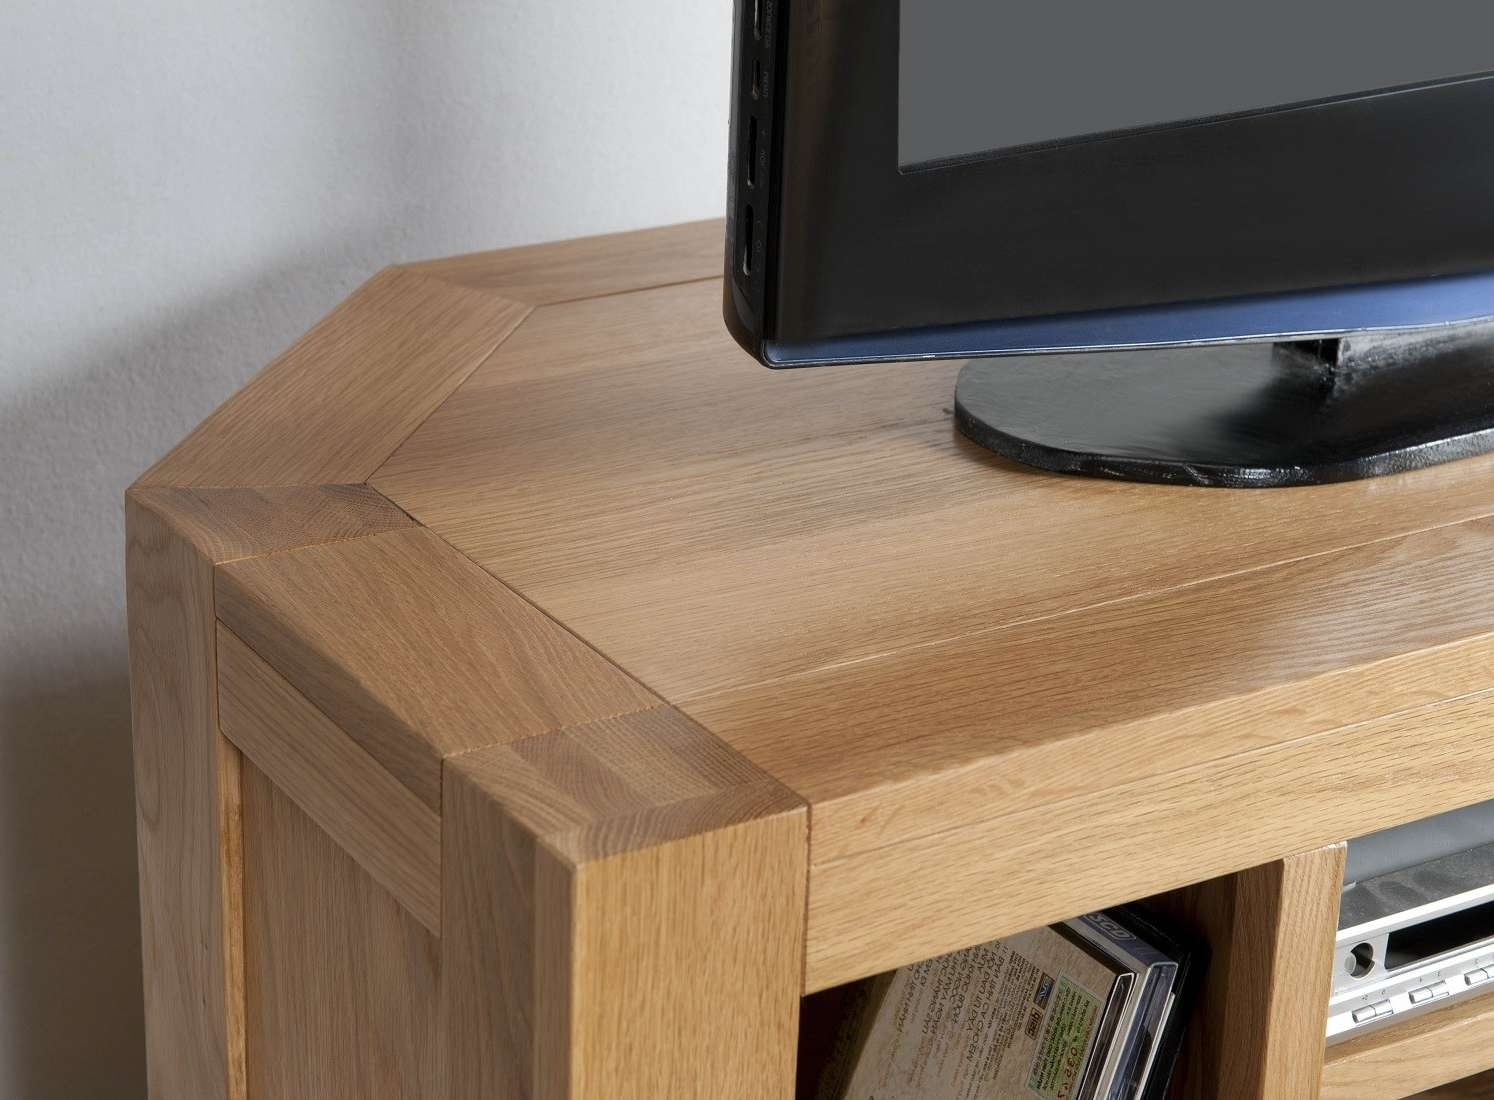 Aylesbury Contemporary Light Oak Corner Tv Unit | Oak Furniture Uk Pertaining To Contemporary Oak Tv Stands (View 1 of 15)